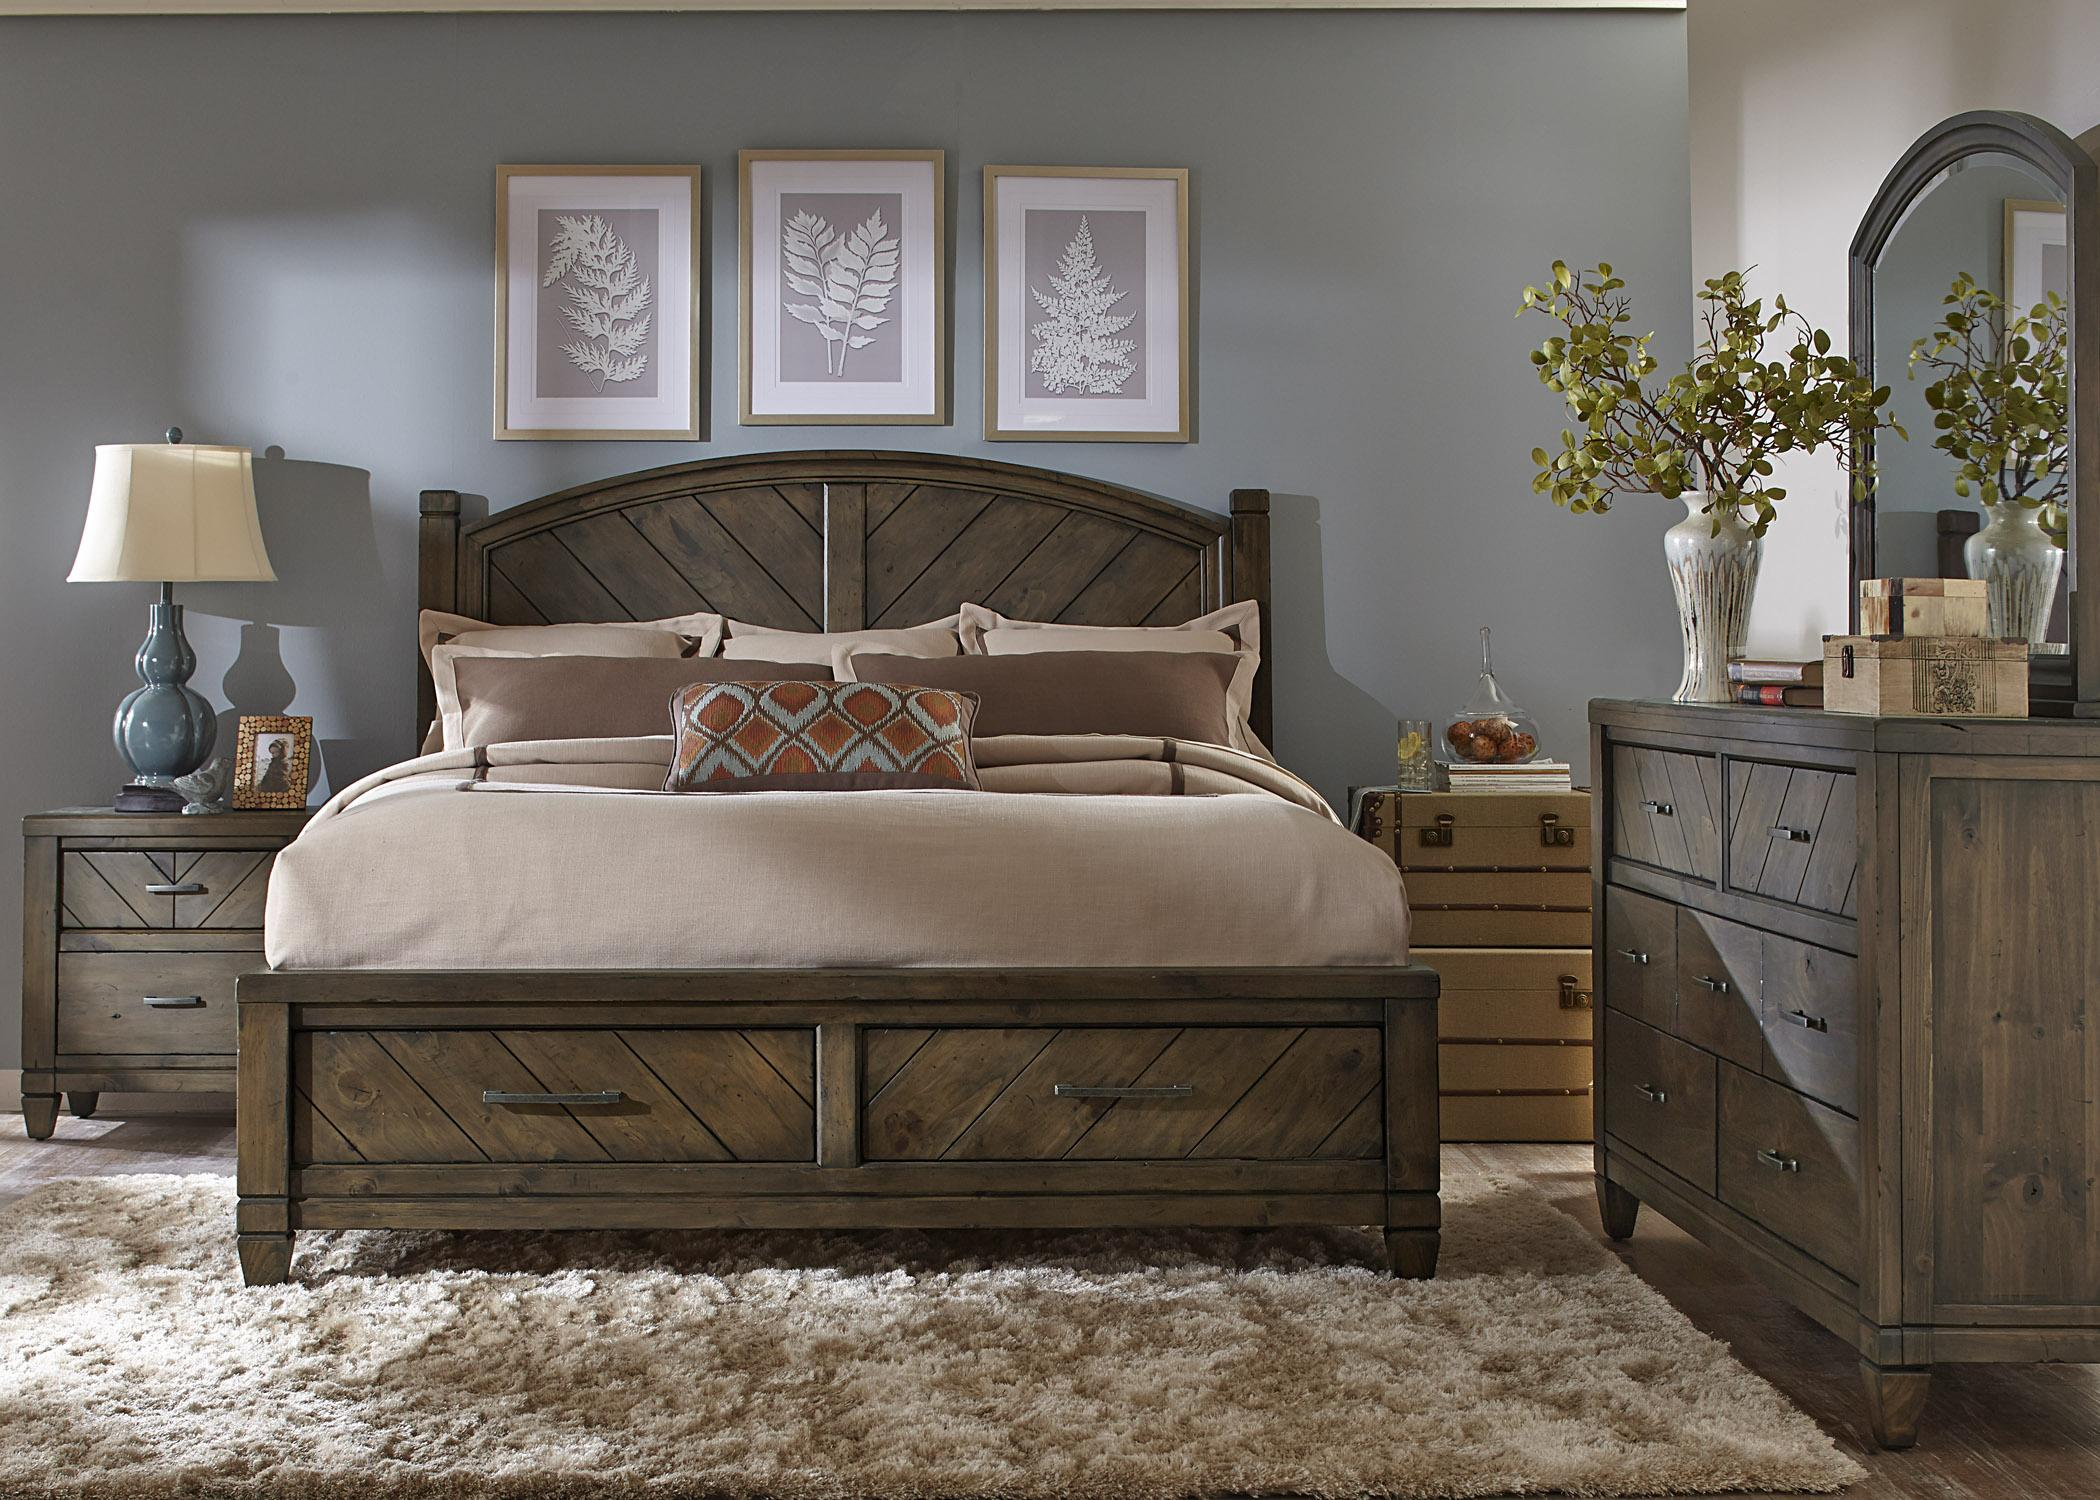 Bedroom Set By Liberty Bedroom Furniture Liberty Bedroom Furniture